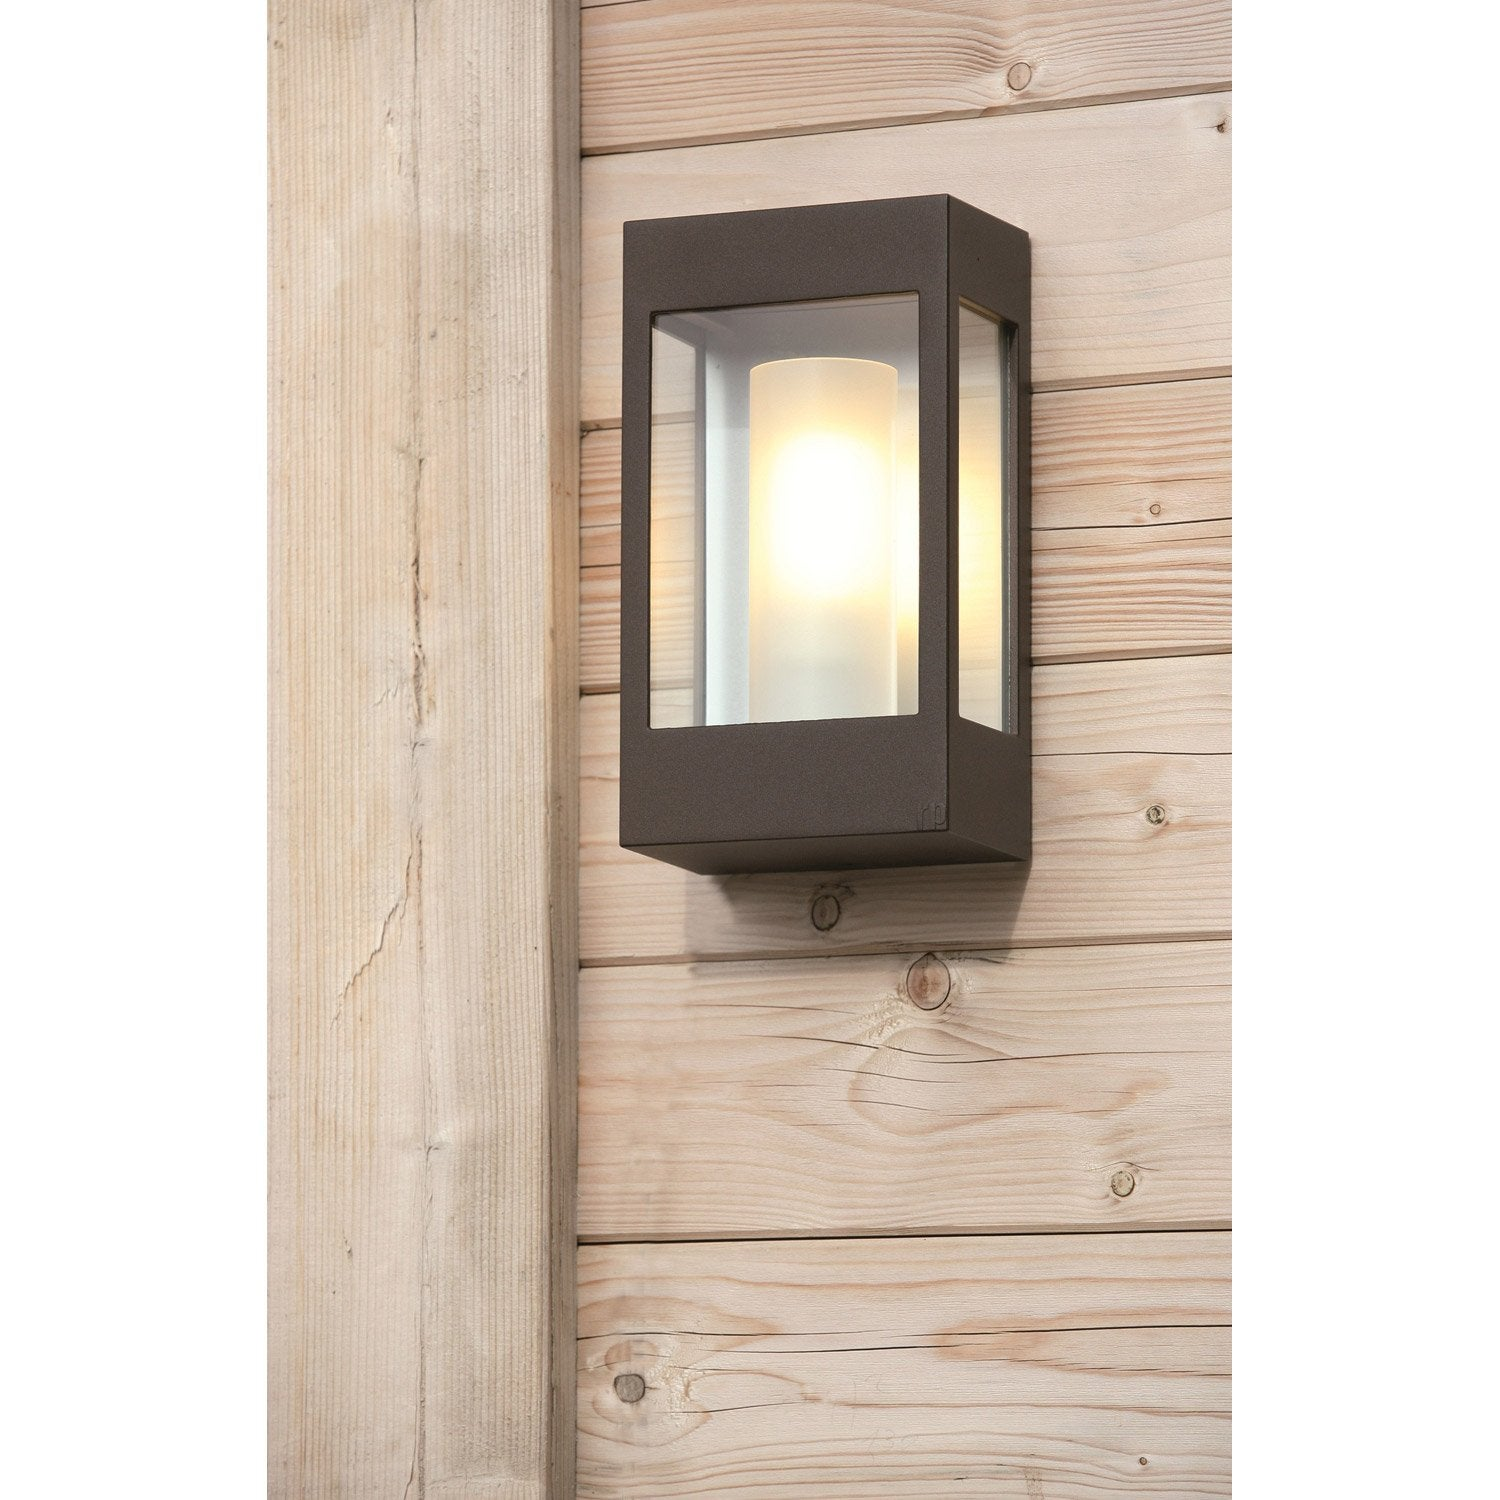 Applique ext rieure brick e27 60 w rouille roger pradier for Applique murale double exterieur